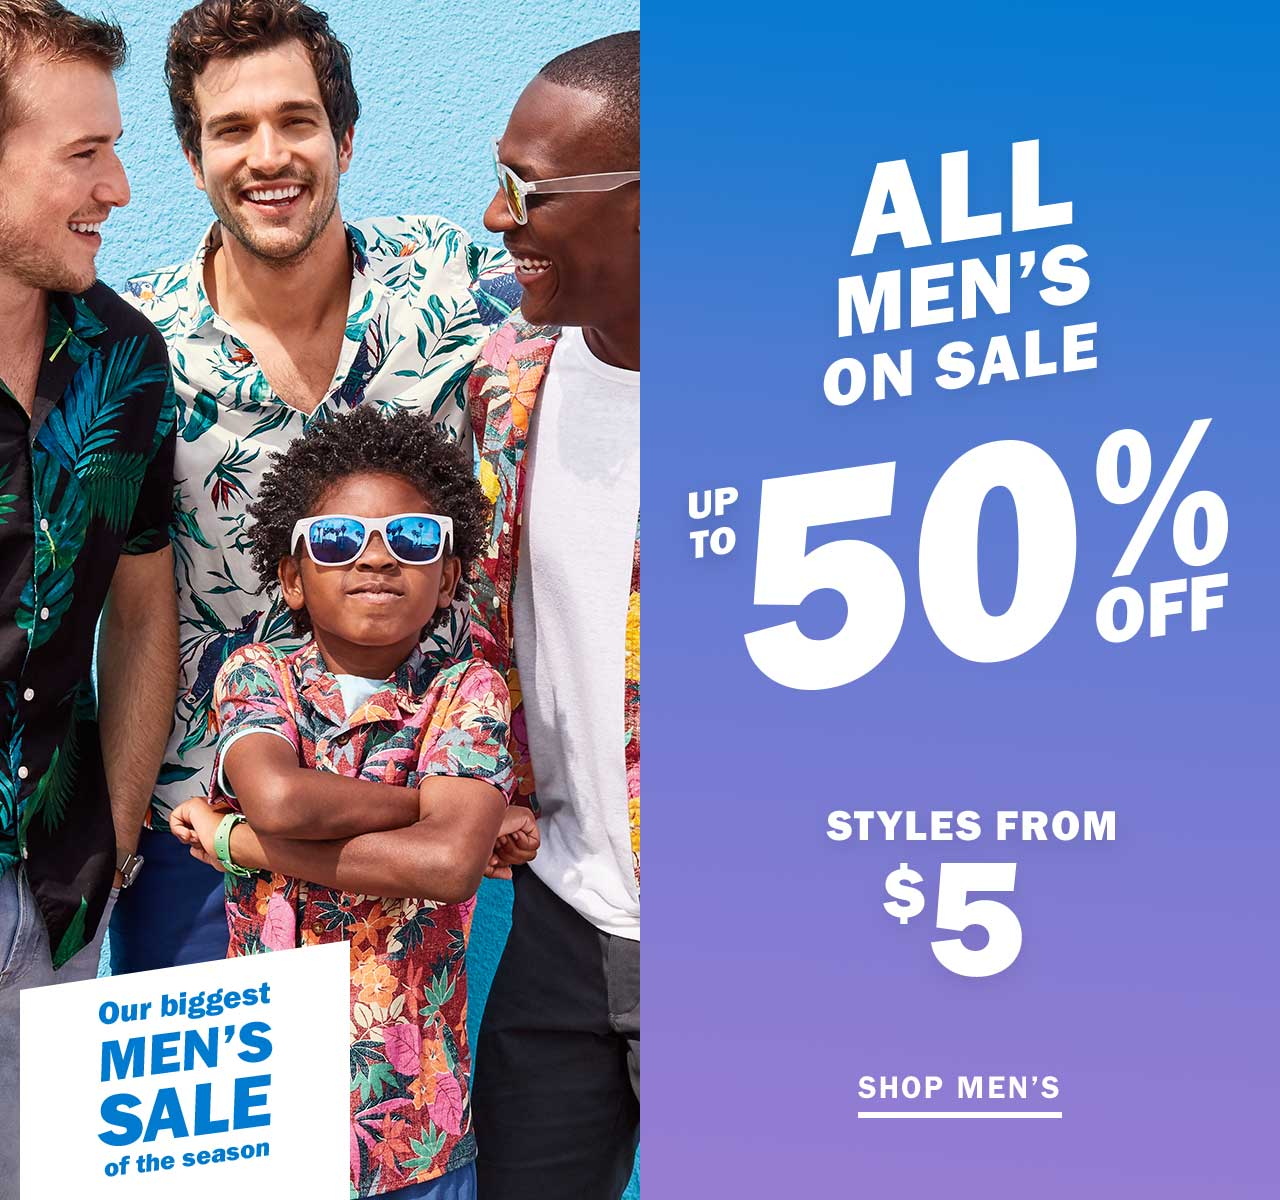 ALL MENS ON SALE UP TO 50% OFF | SHOP MENS